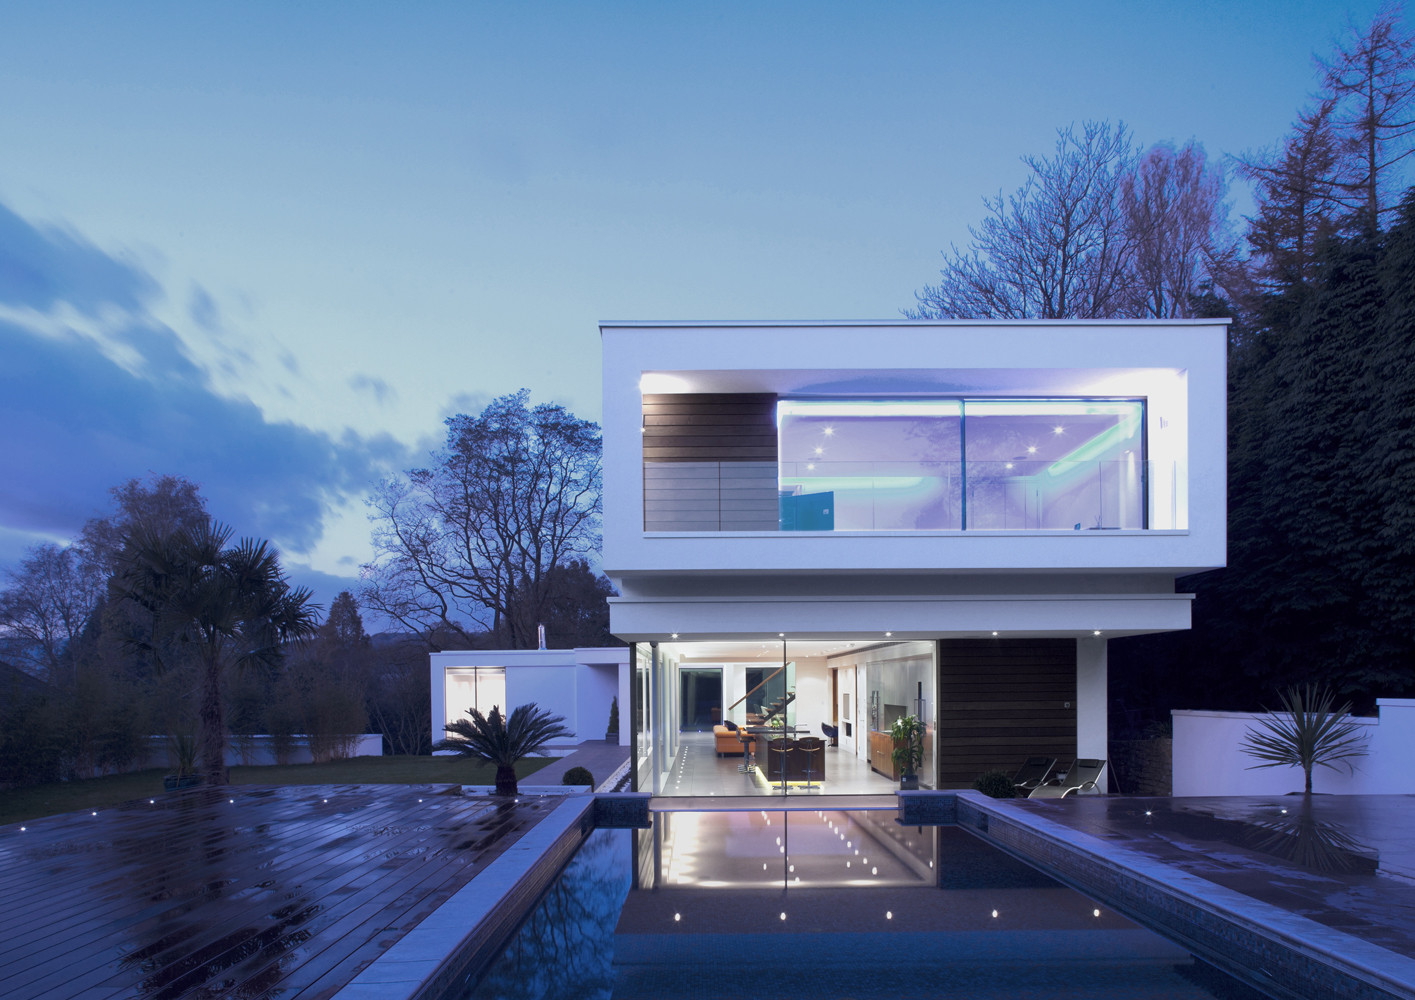 White Lodge By Dyergrimes Architects In Tandridge England